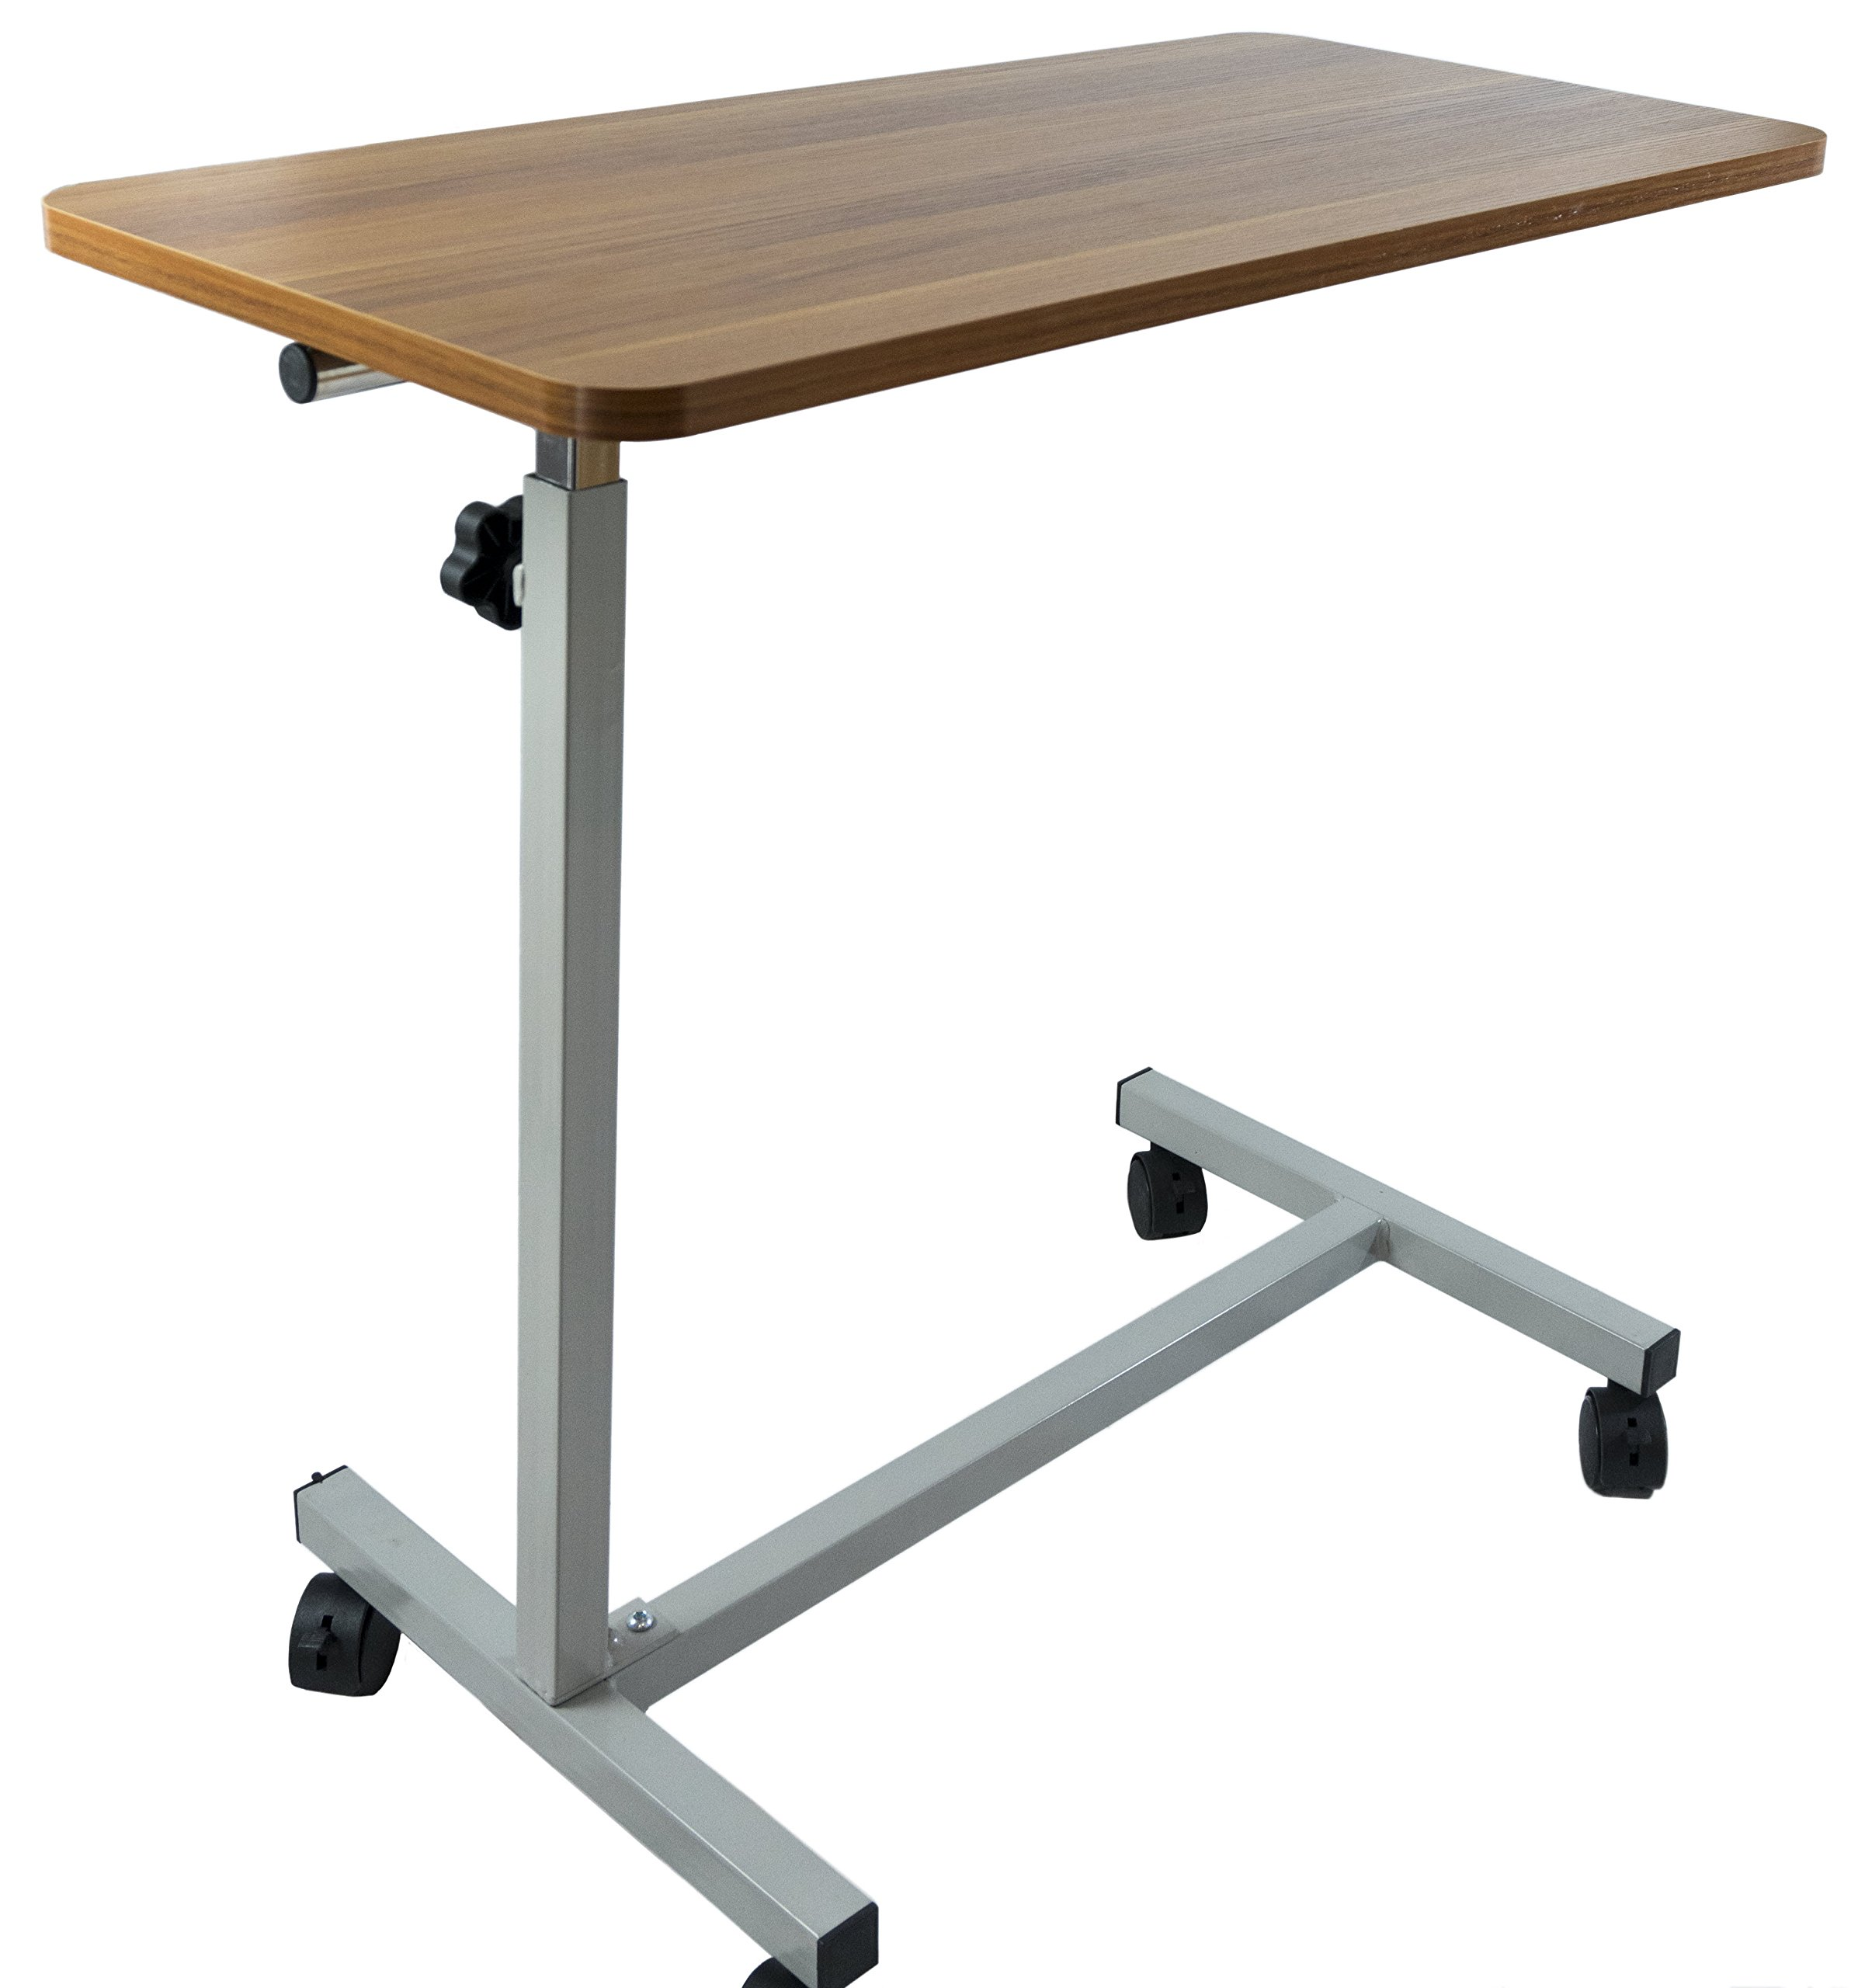 Adjustable Overhead Table - Portable Desk Table for Reading, Writing, Eating - for Elderly, Handicap, Disabled, Or Bedridden Patients